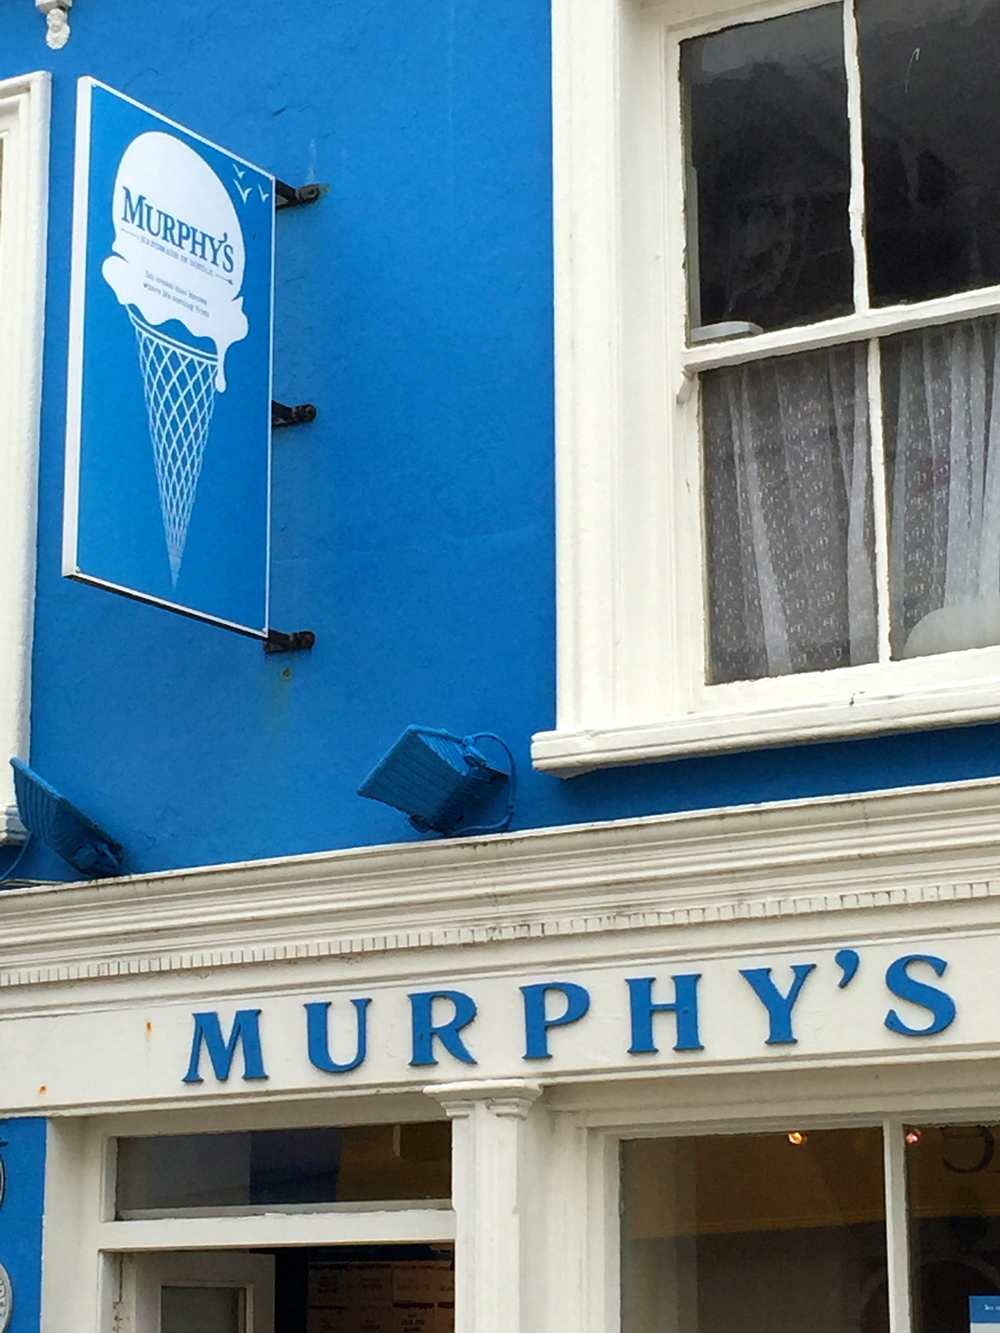 Murphy's Ice Cream, Dingle, Co. Kerry, Ireland.